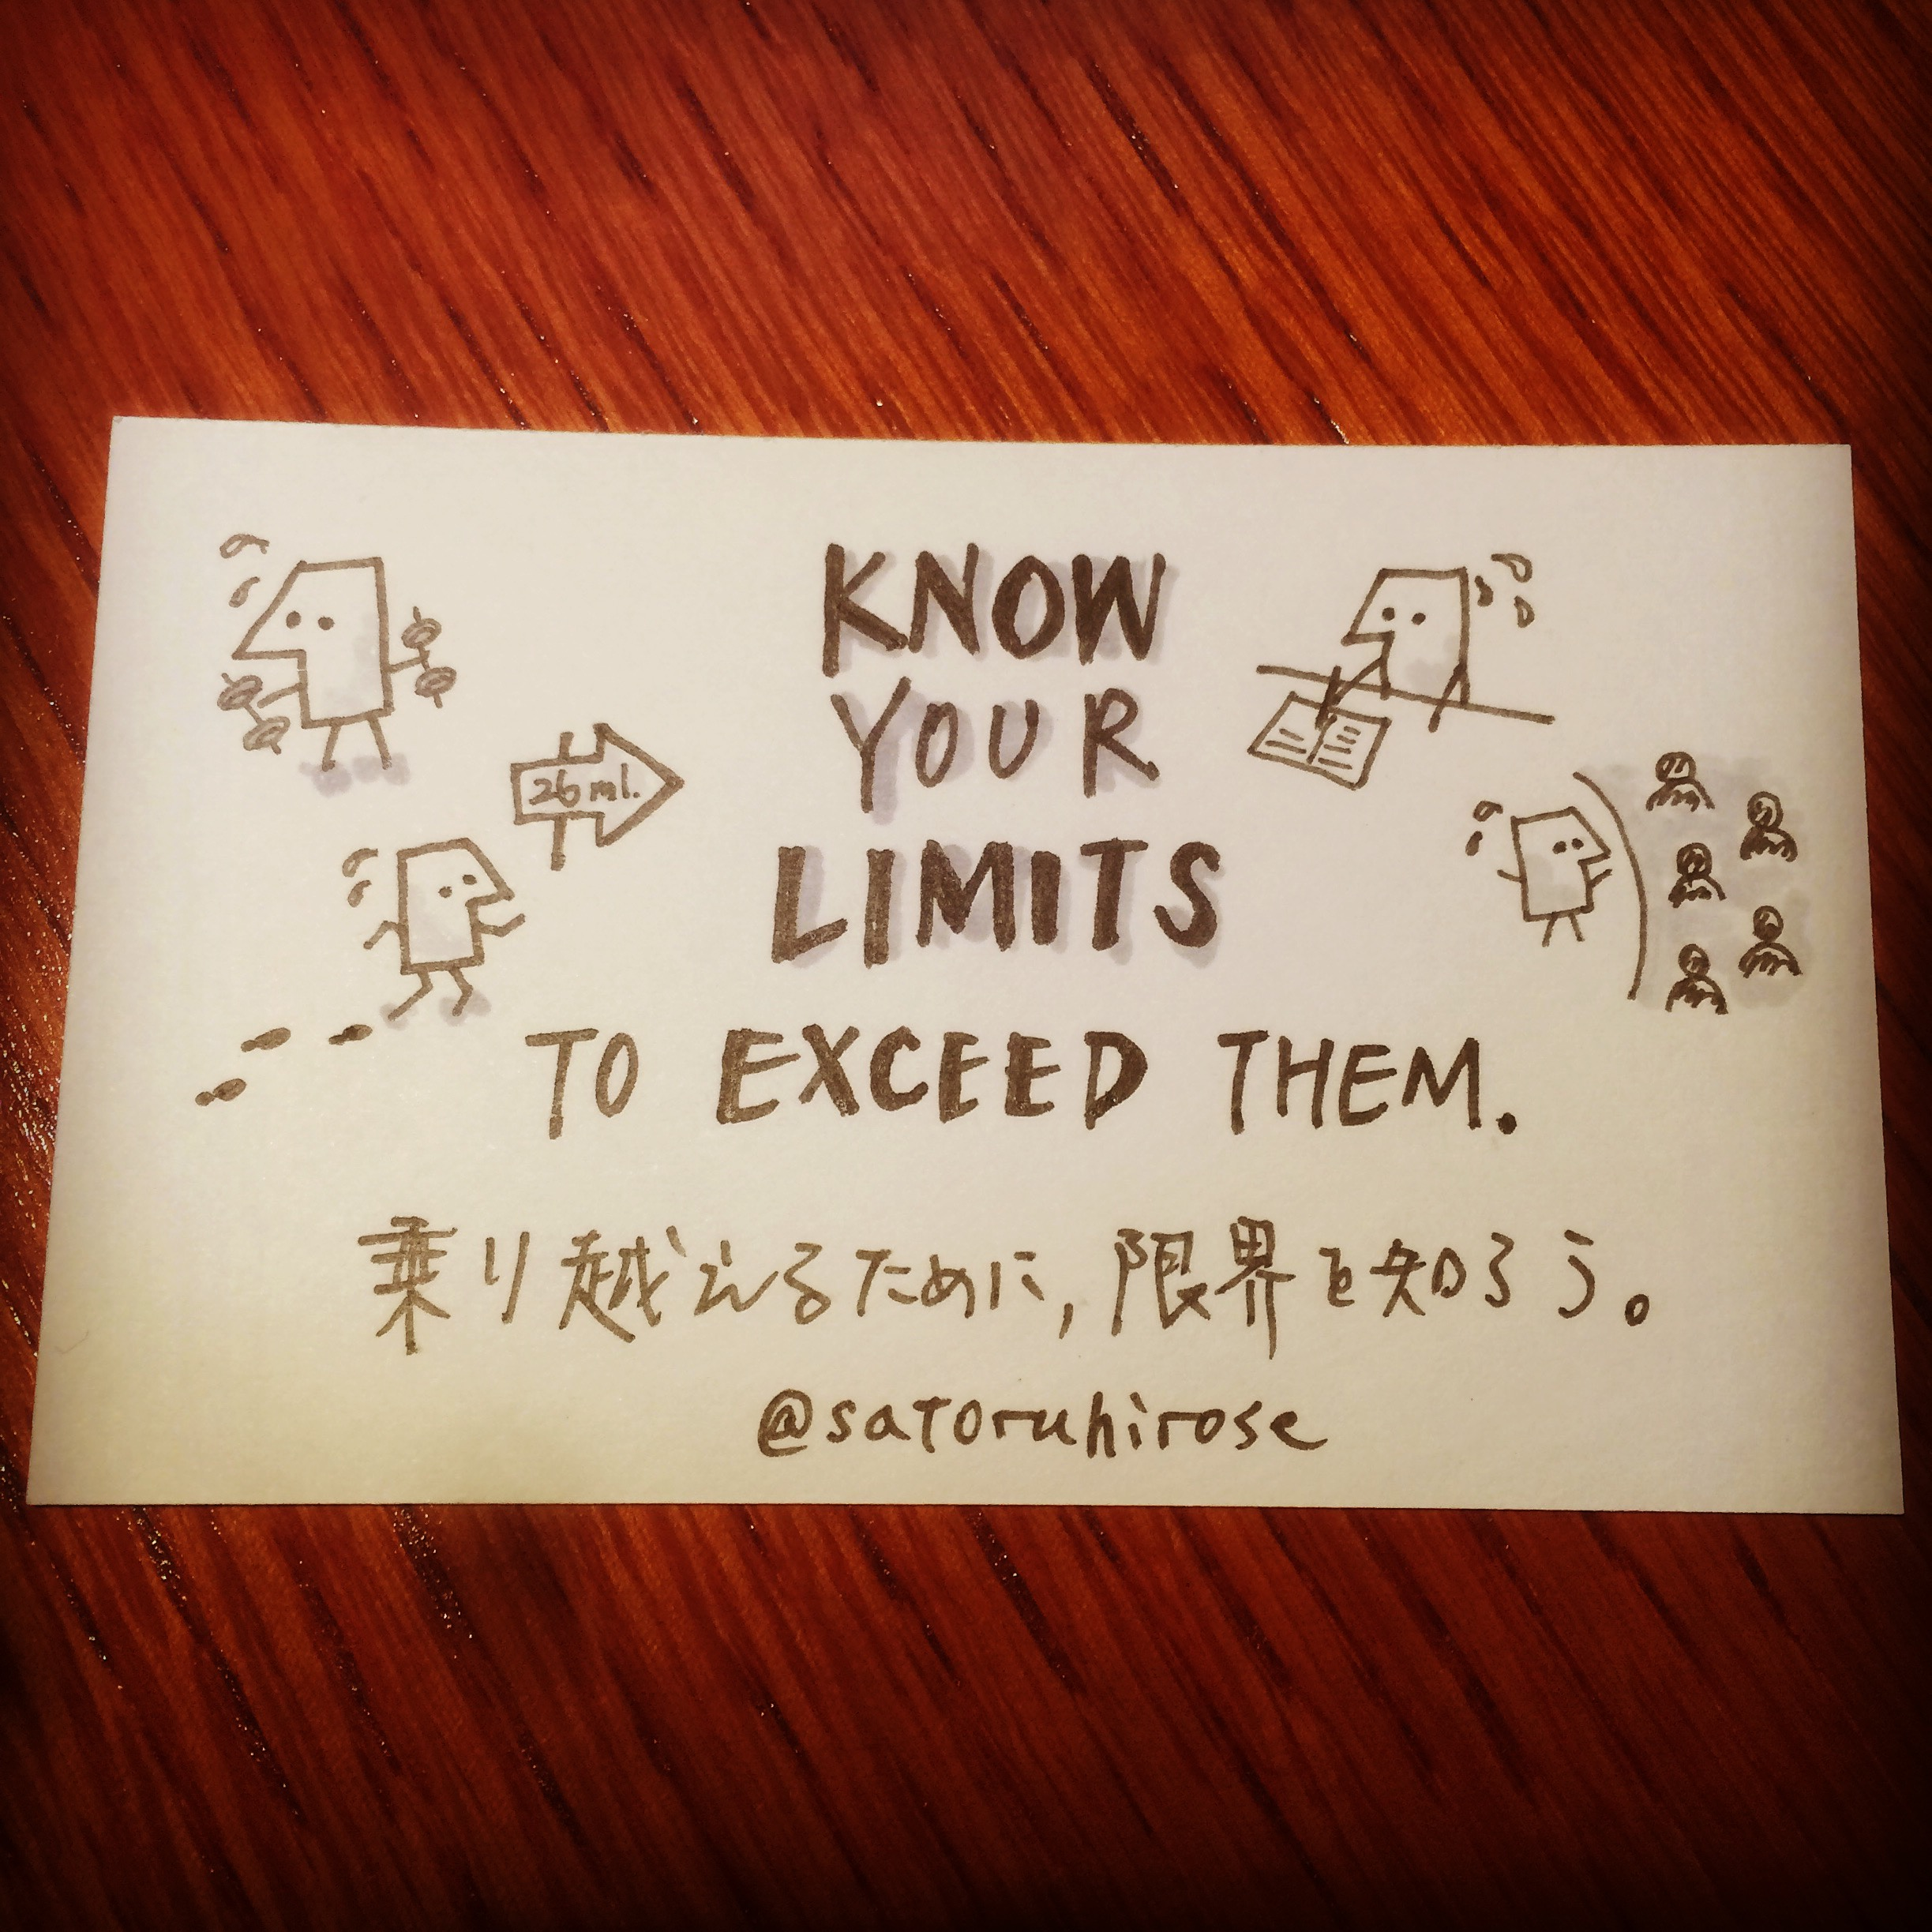 Know your limits to exceed them.